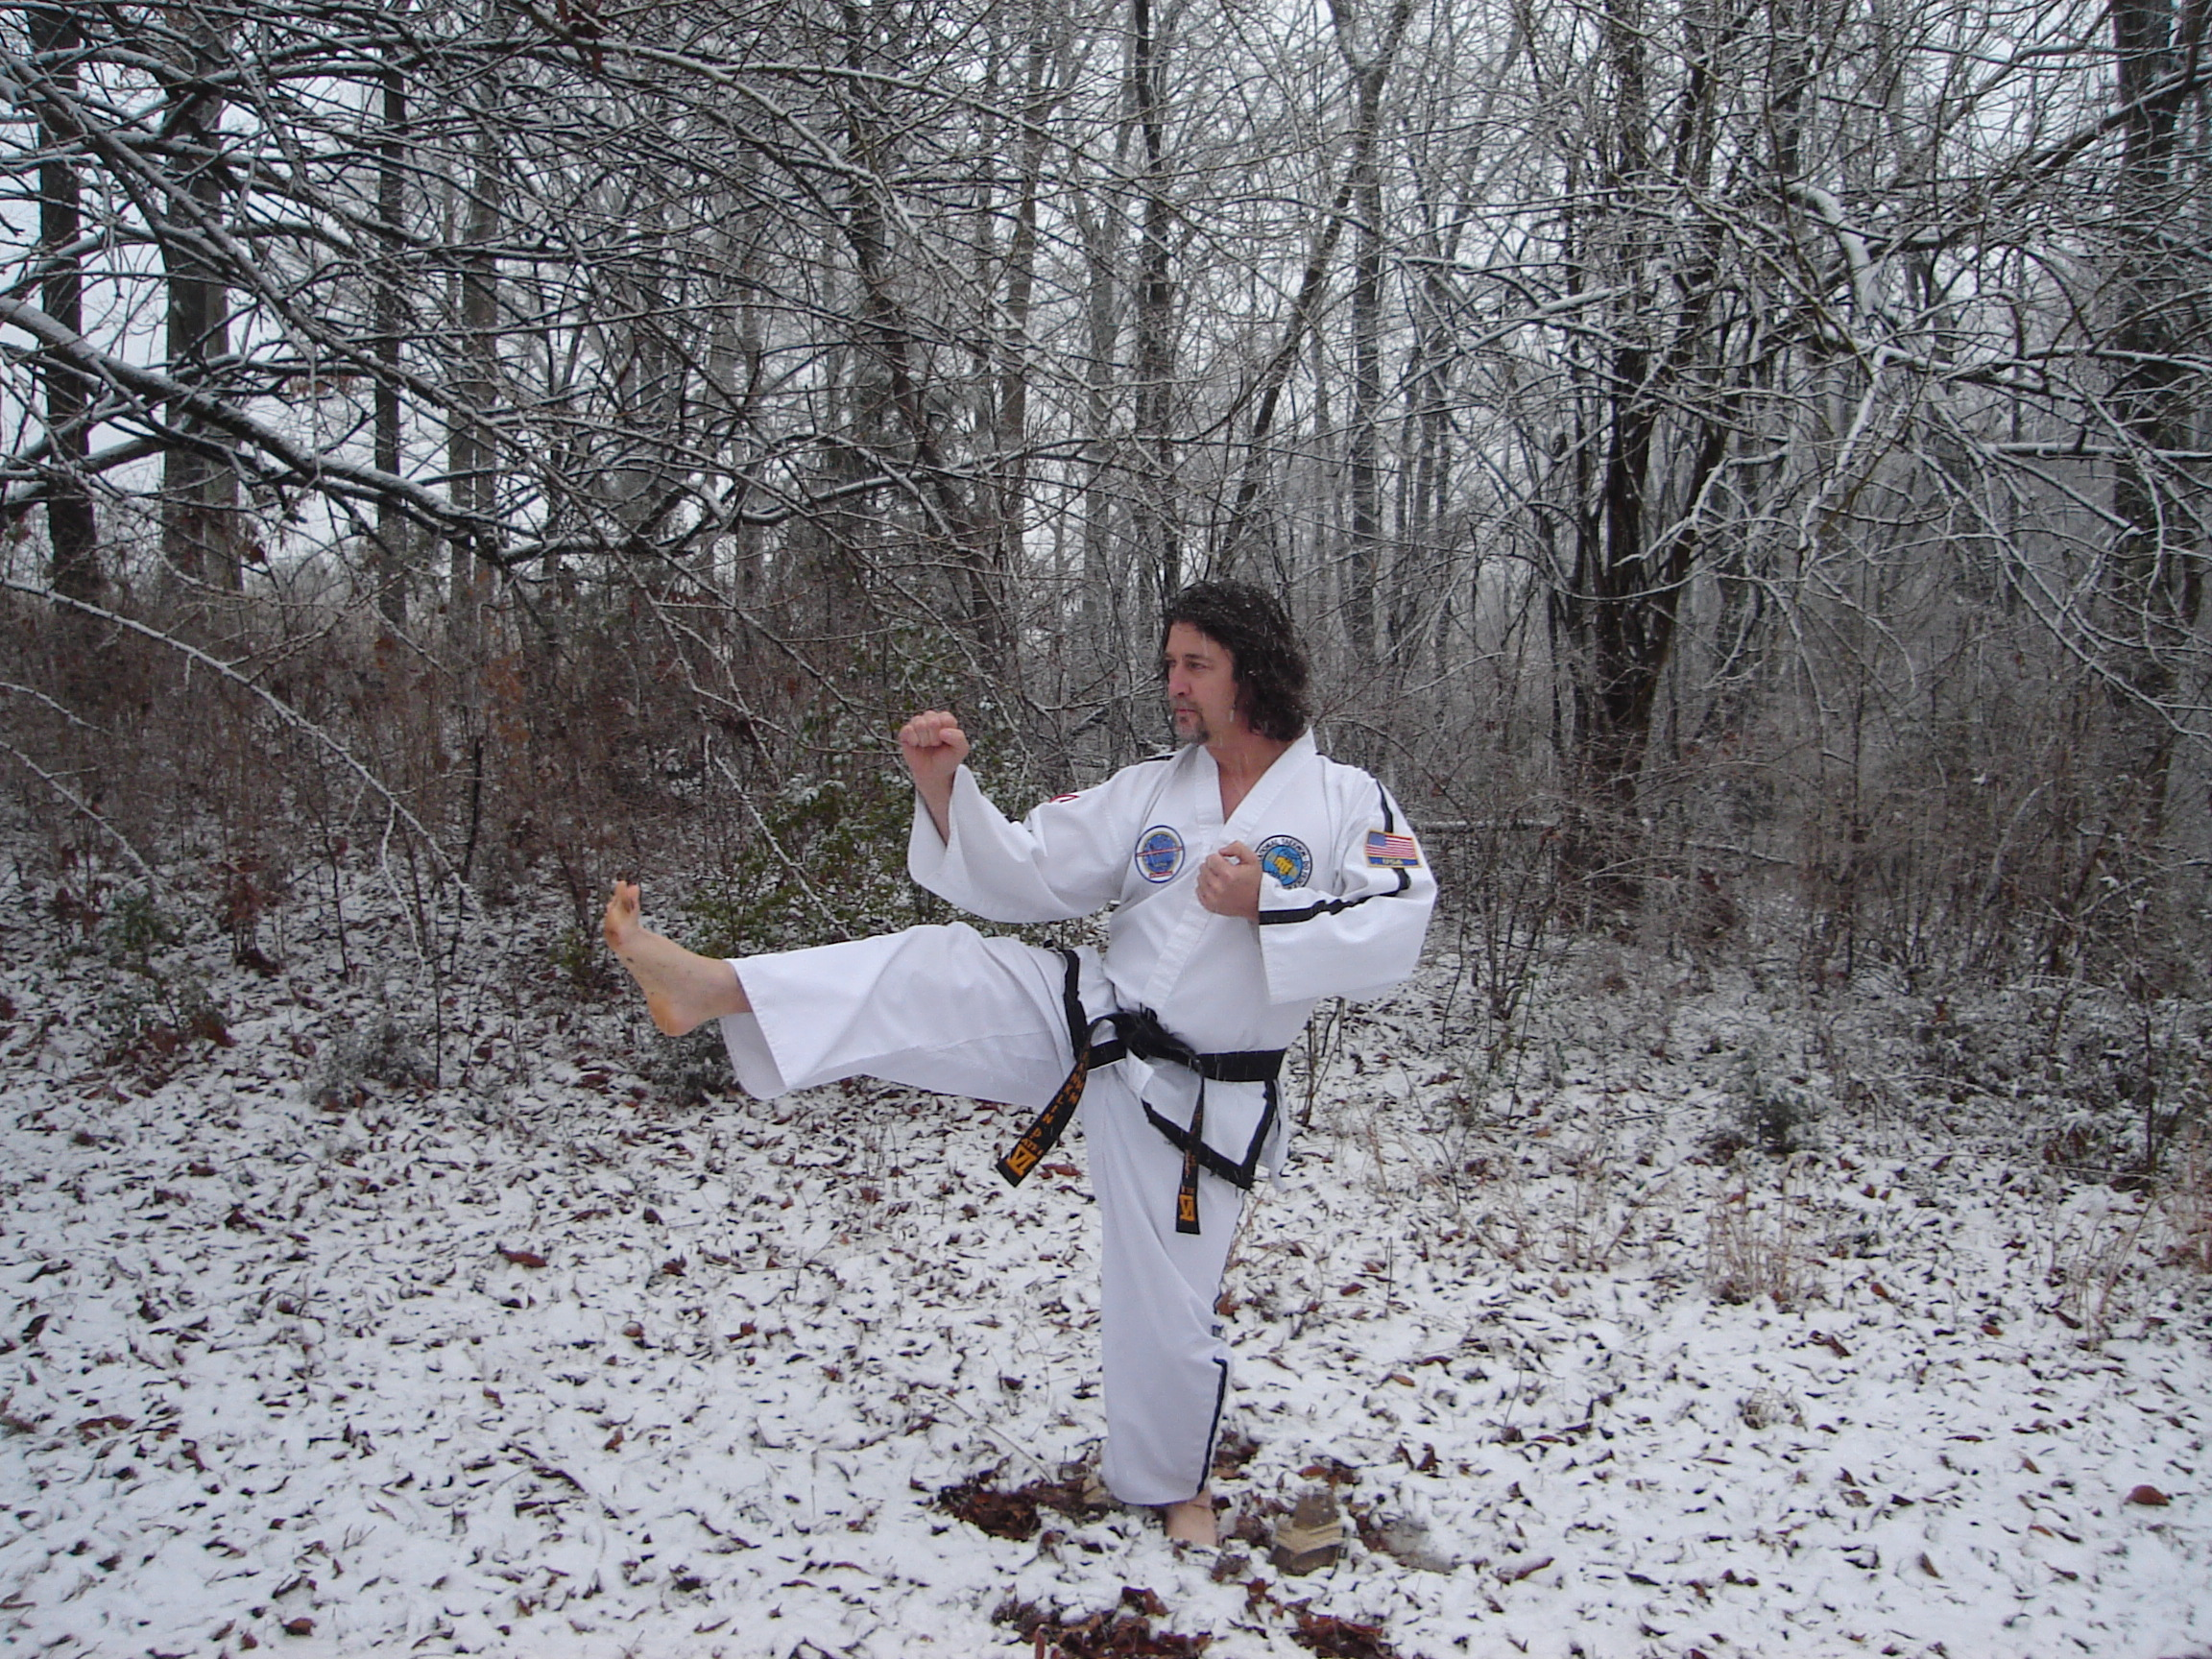 Snow and Taekwon-Do